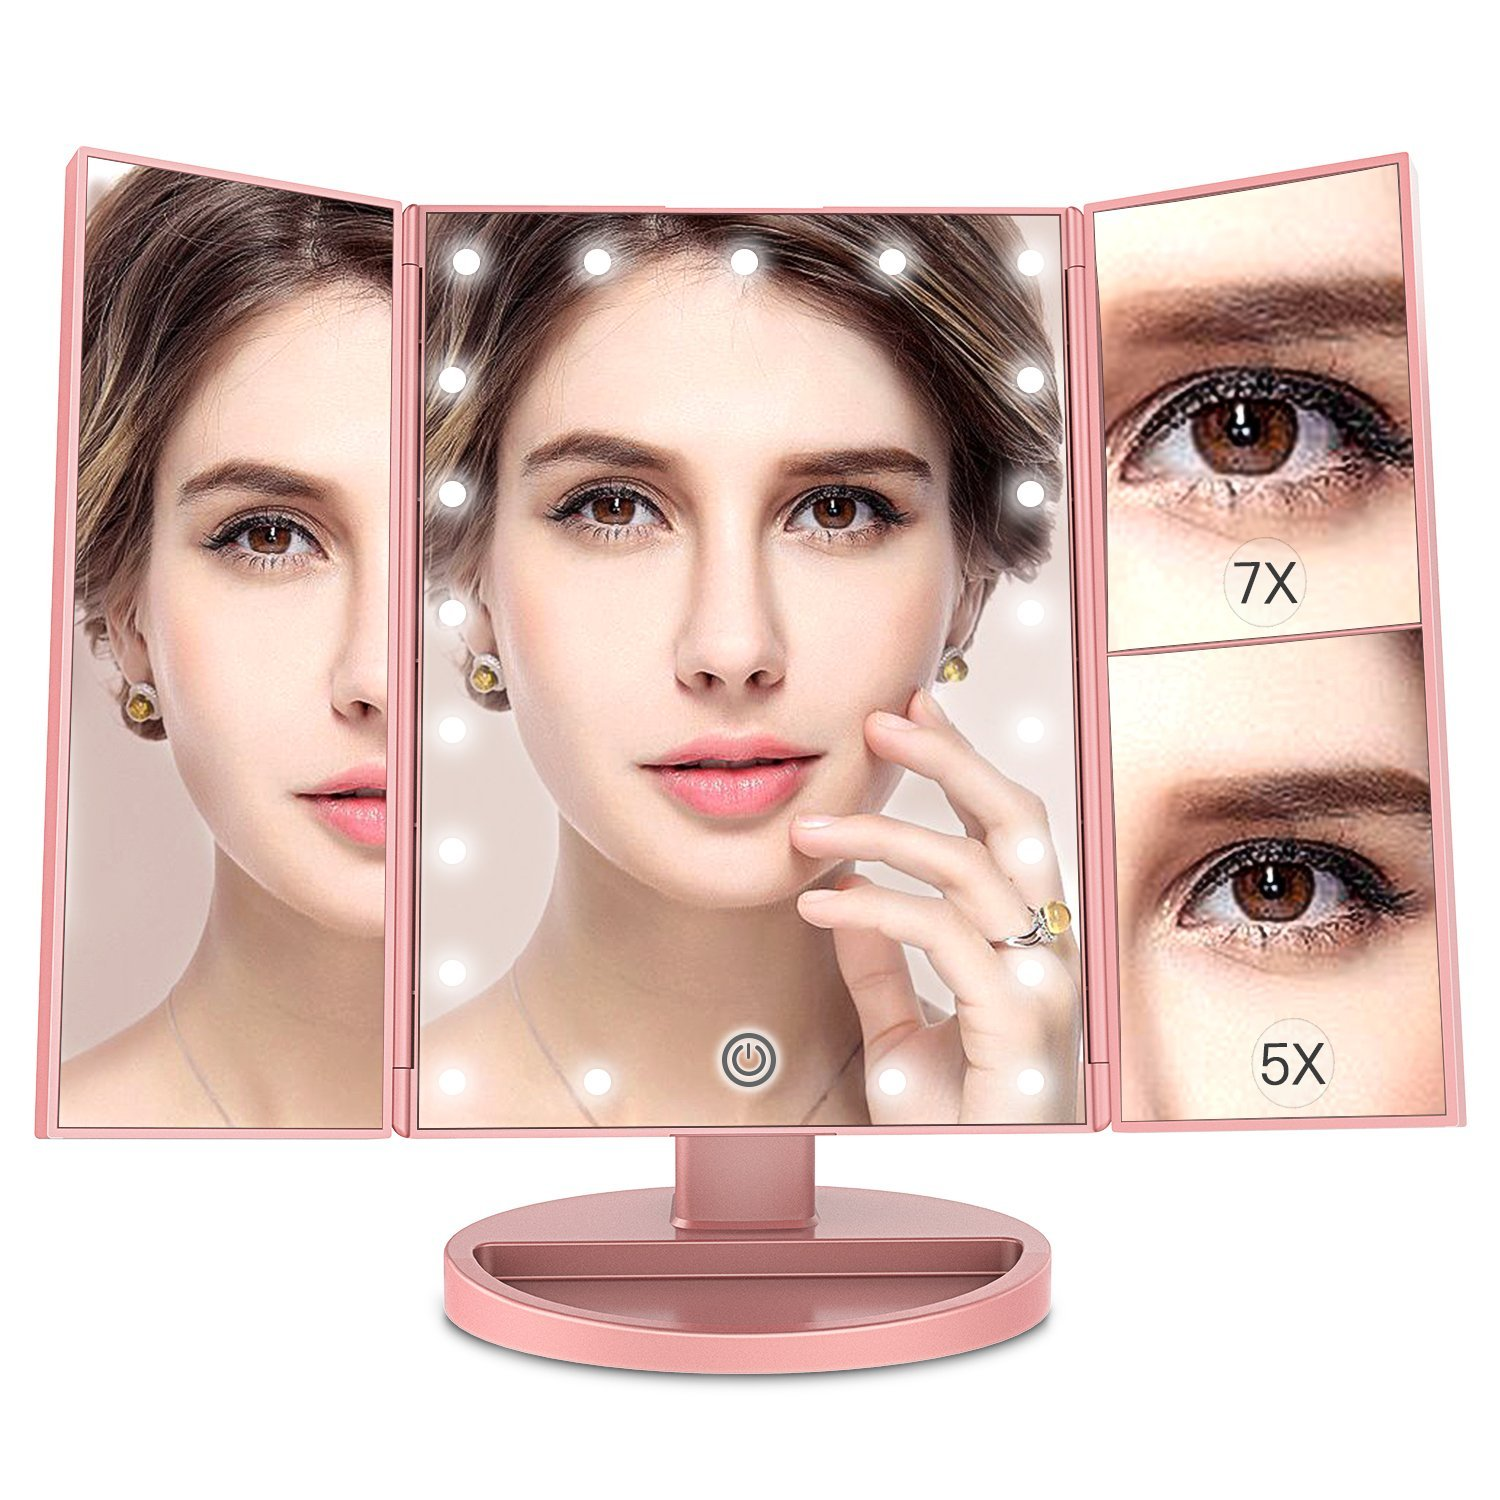 MayBeau Makeup Vanity Mirror with 7X/5X Magnification,Trifold Mirror with 21 LED lights,Touch Screen,180 Degree Adjustable Rotation,Dual Power Supply,Countertop Cosmetic Mirror